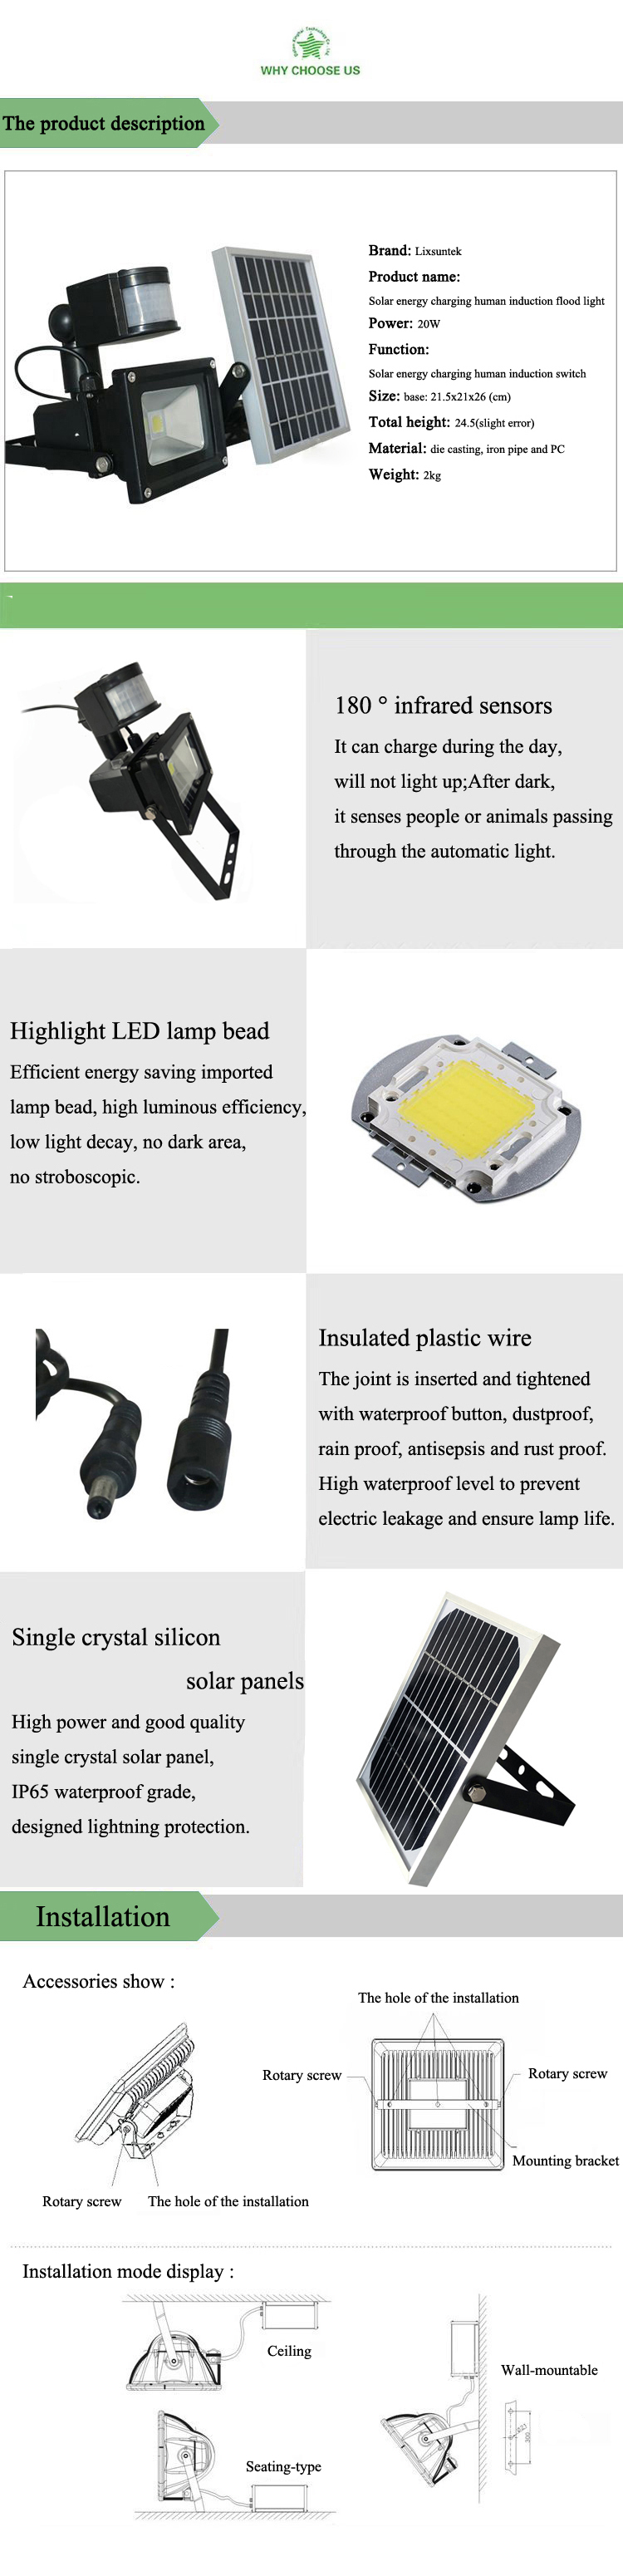 10w Lamps made in Chinese factories High waterproof level to prevent electric leakage and ensure lamp life led flood light